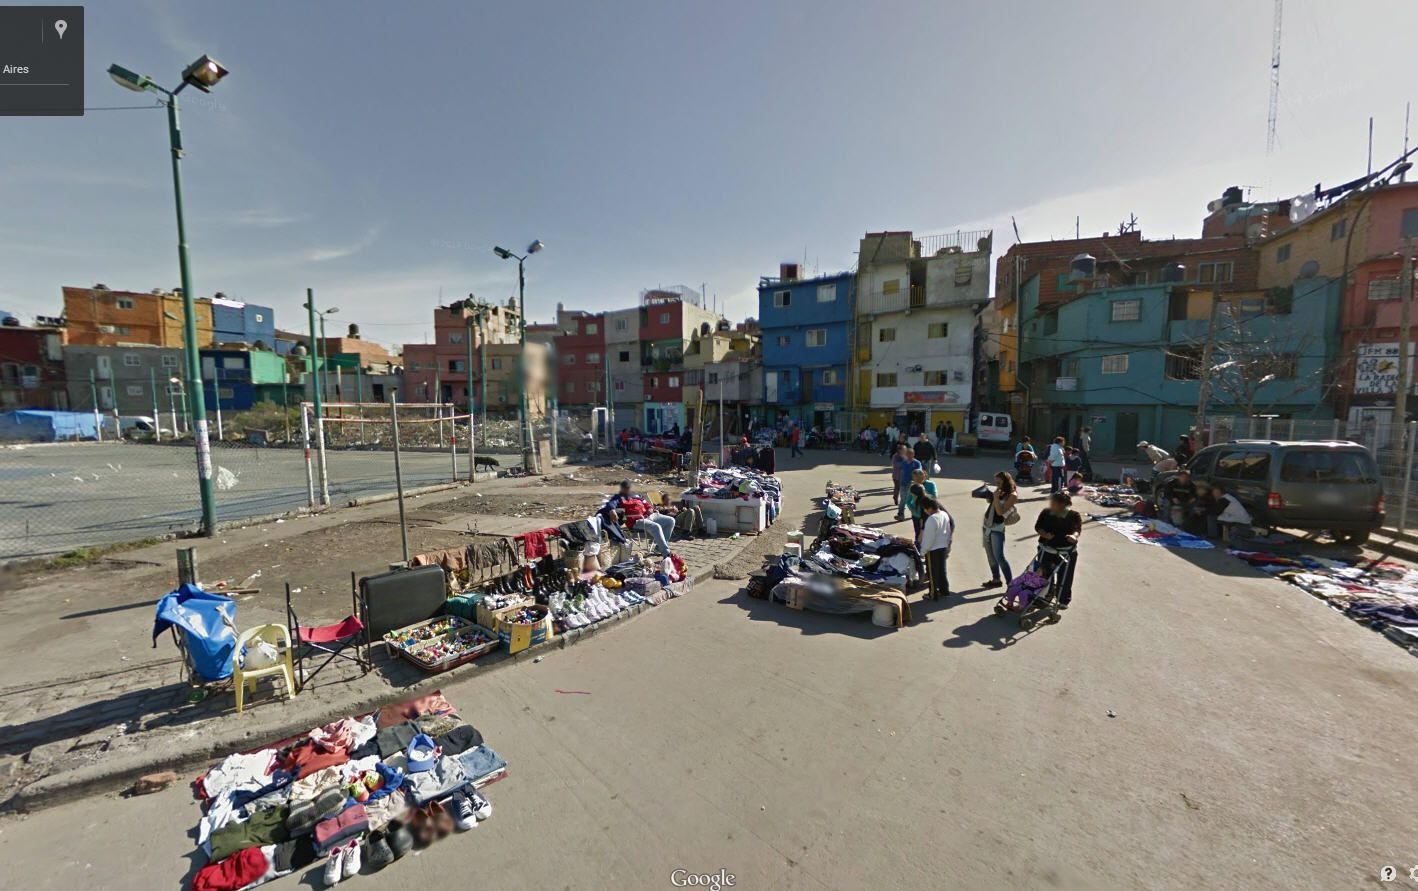 Google Street View Argentina Is Now Live One Of The Not So Nice